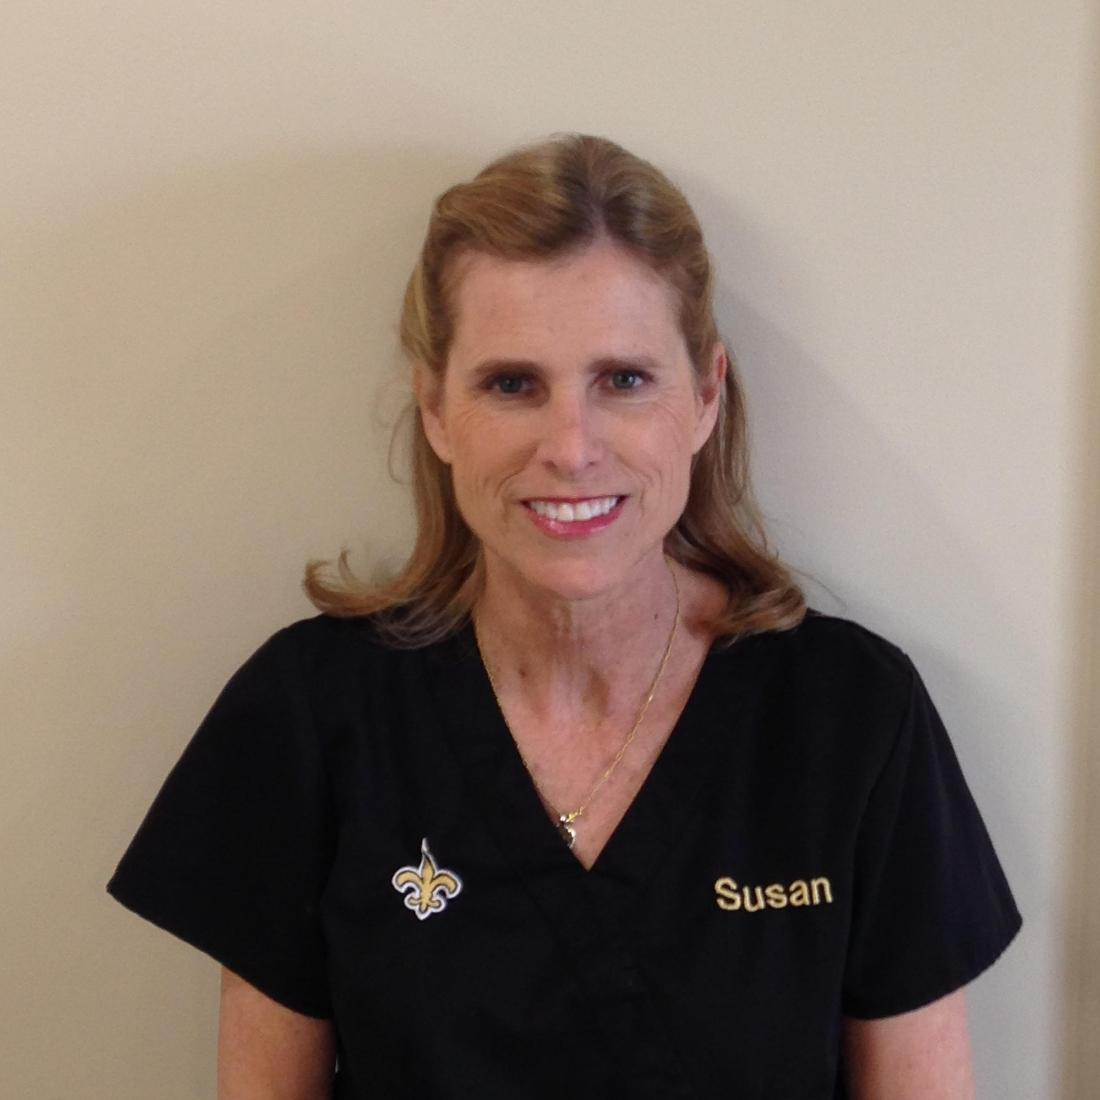 Susan - Dental Hygienist